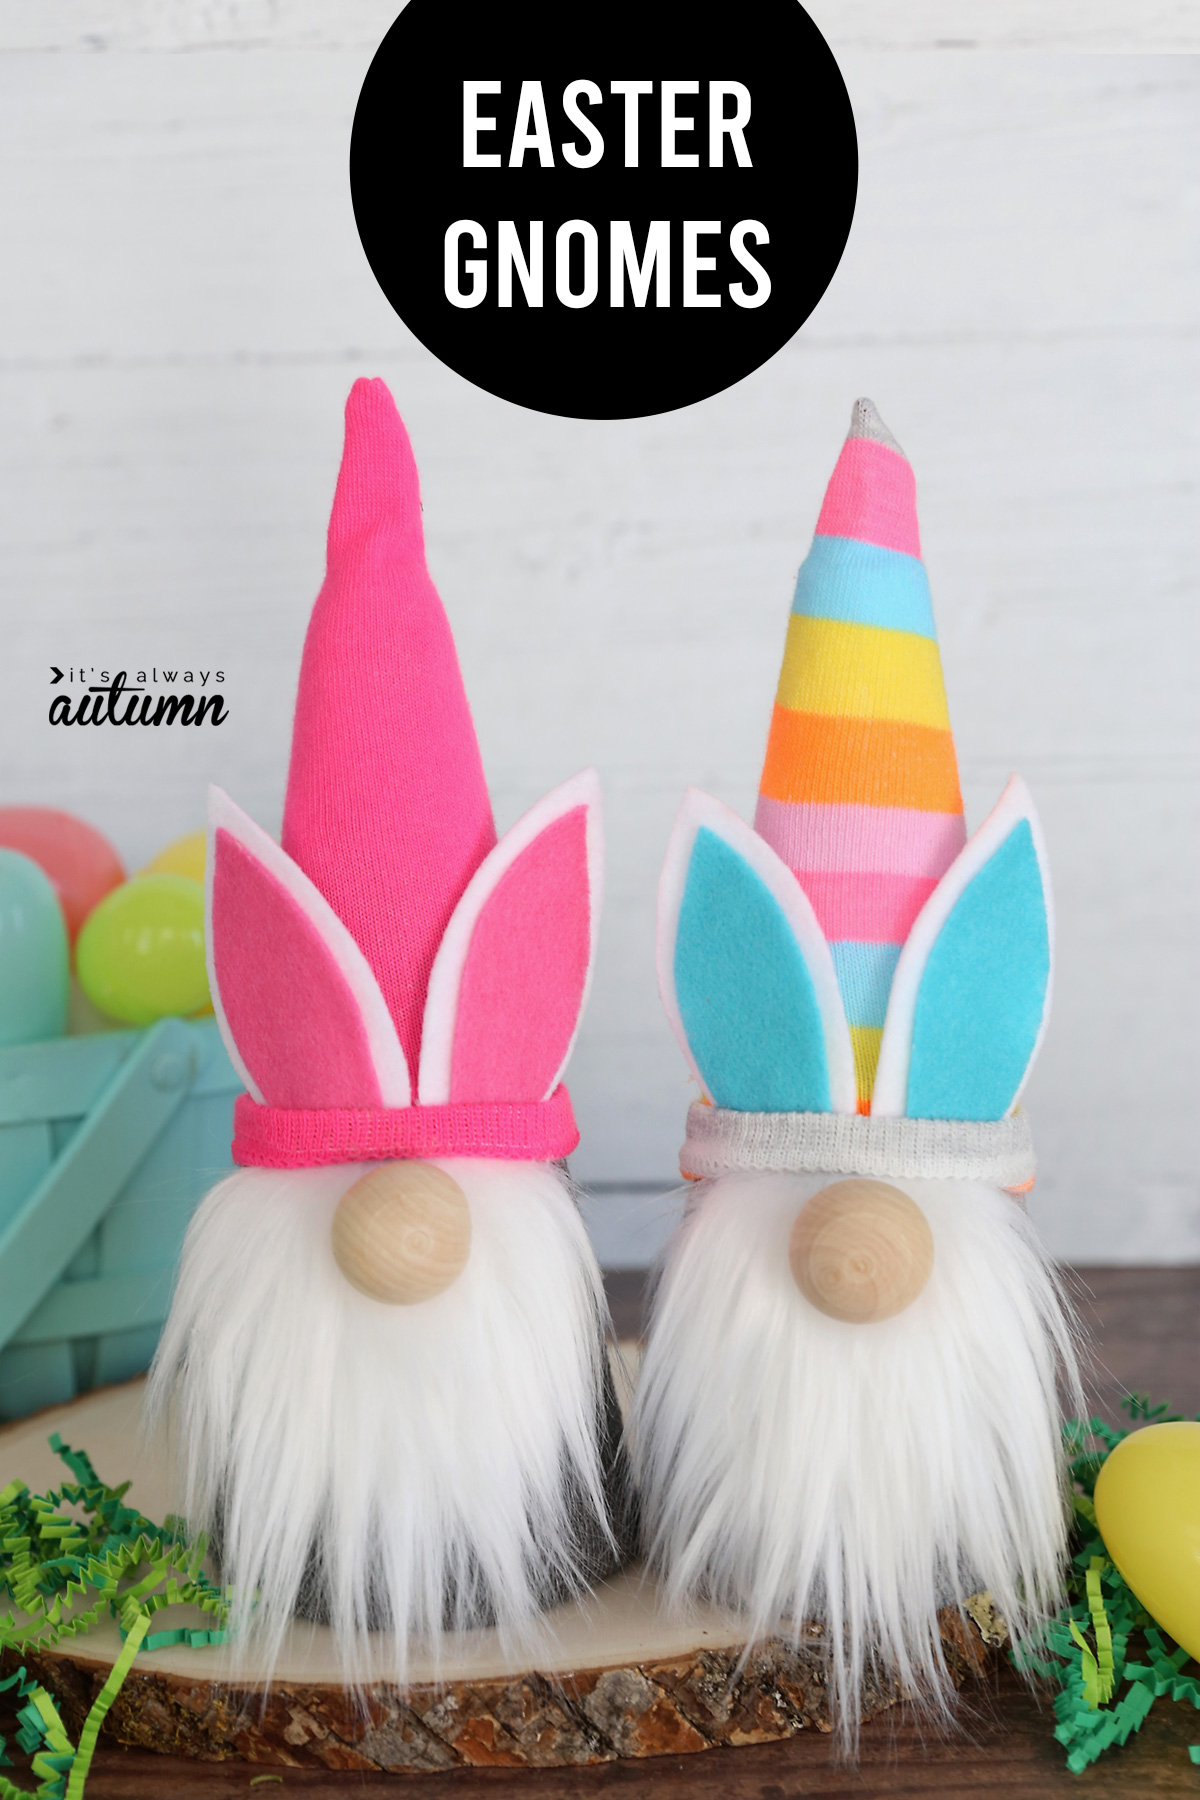 Two sock gnomes with Easter bunny ears and words: Easter gnomes